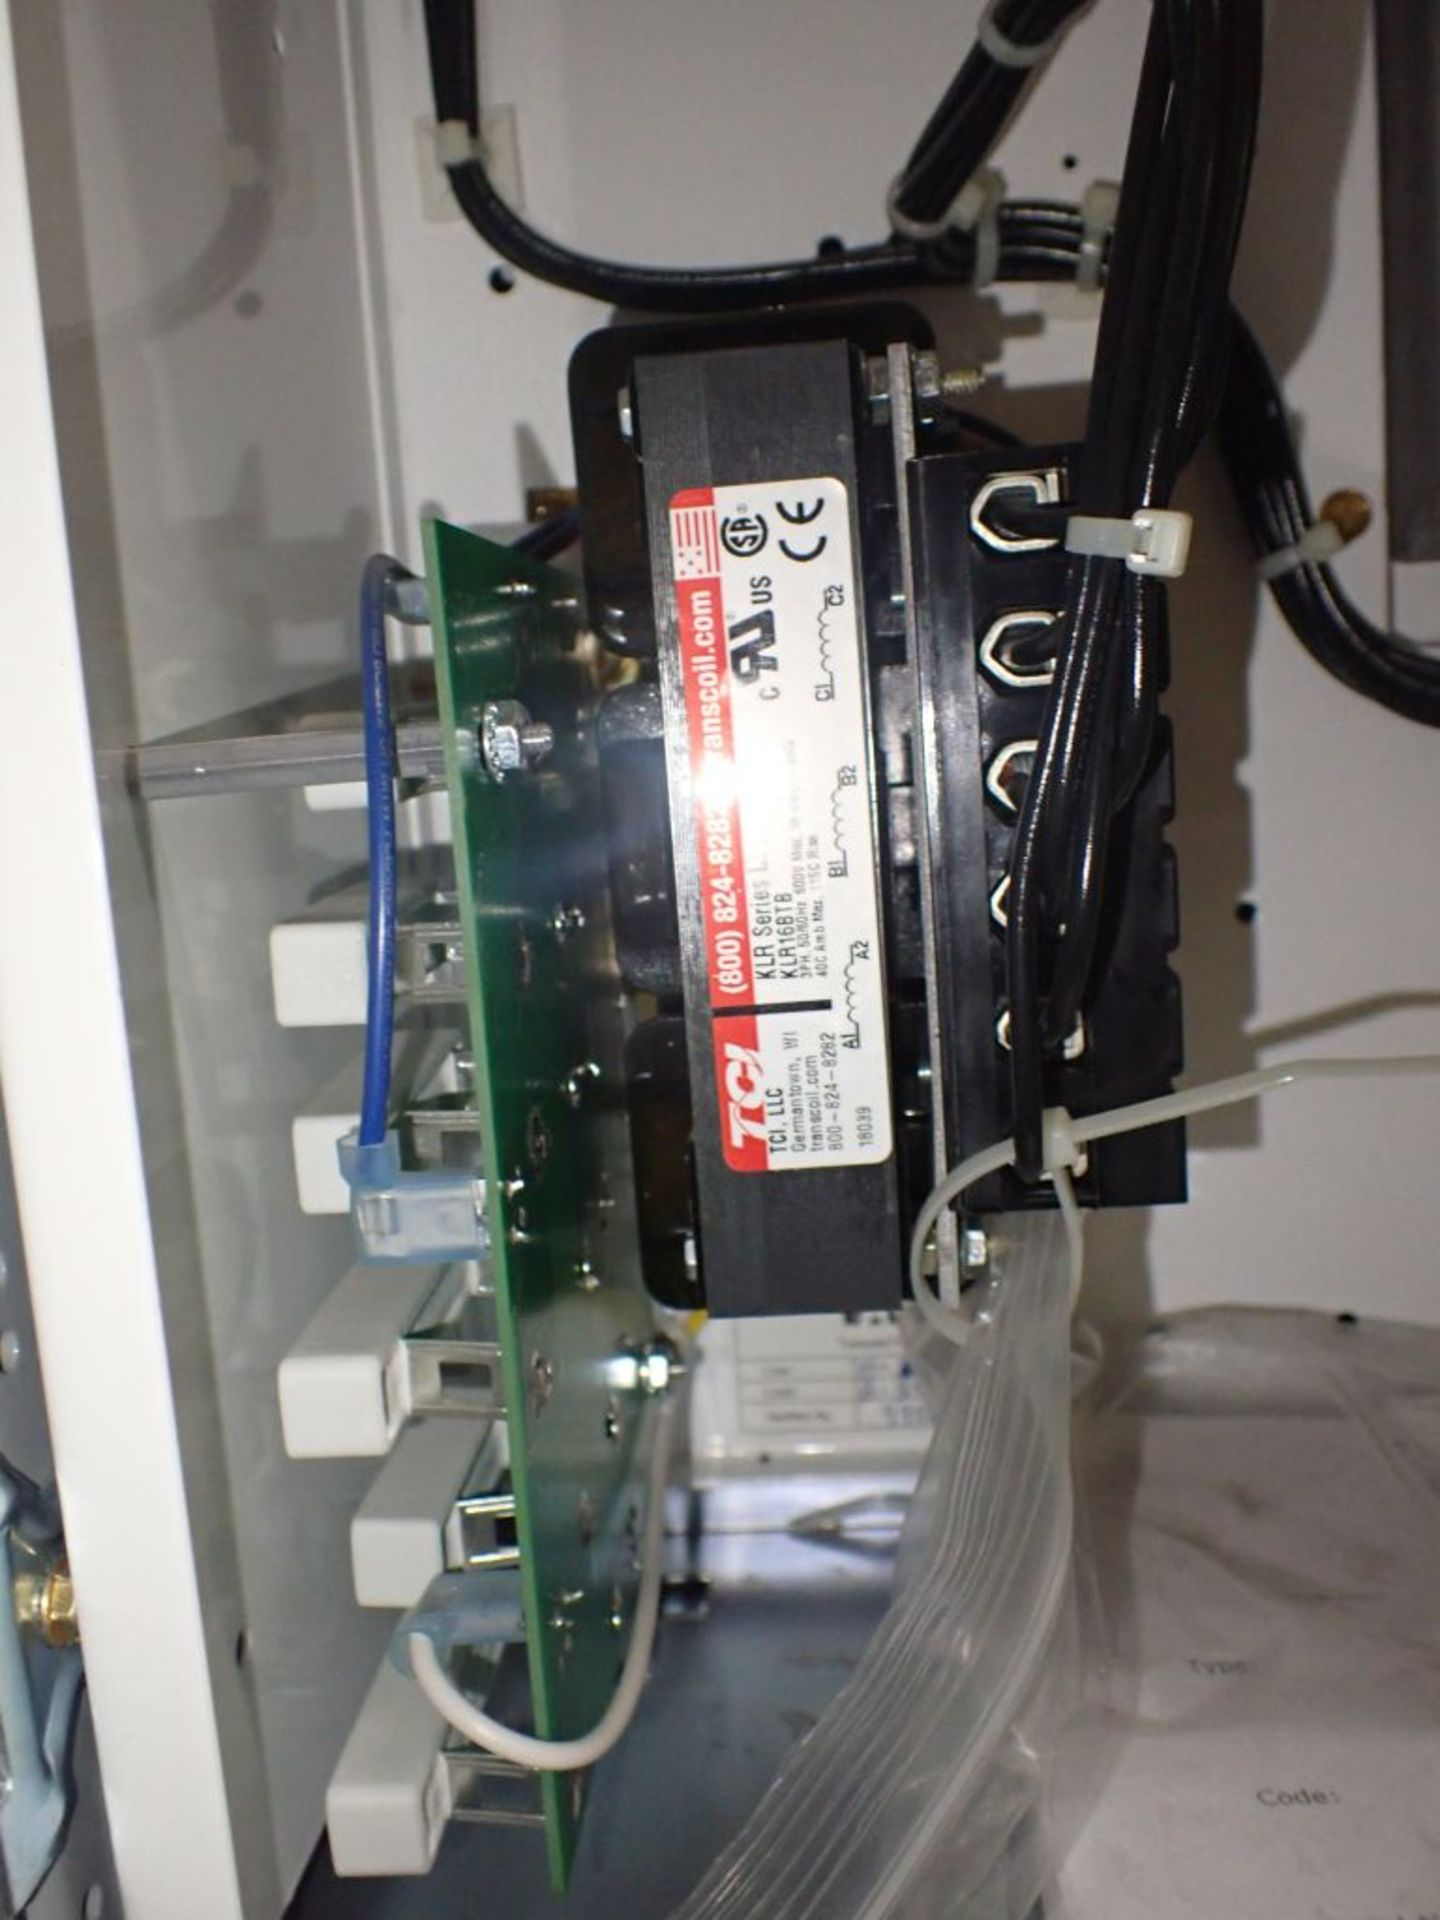 Eaton Freedom 2100 Series Motor Control Center | (2) F206-7A-10HP; (3) F206-15A-10HP; (1) FDRB-100A; - Image 29 of 87